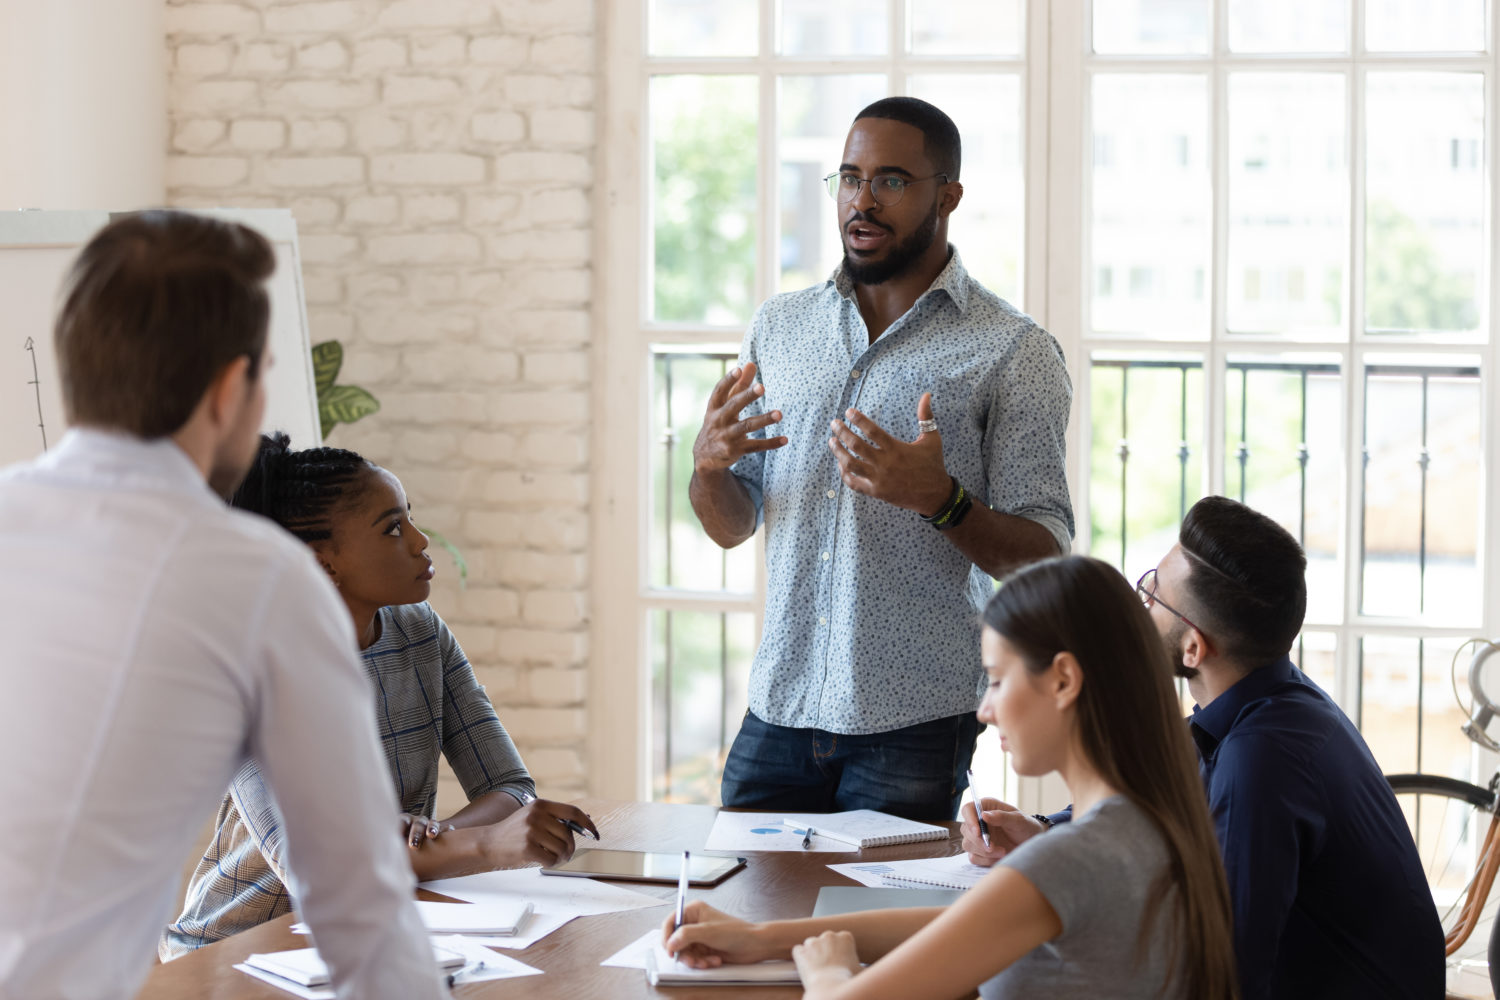 Black manager speaks to table of employees